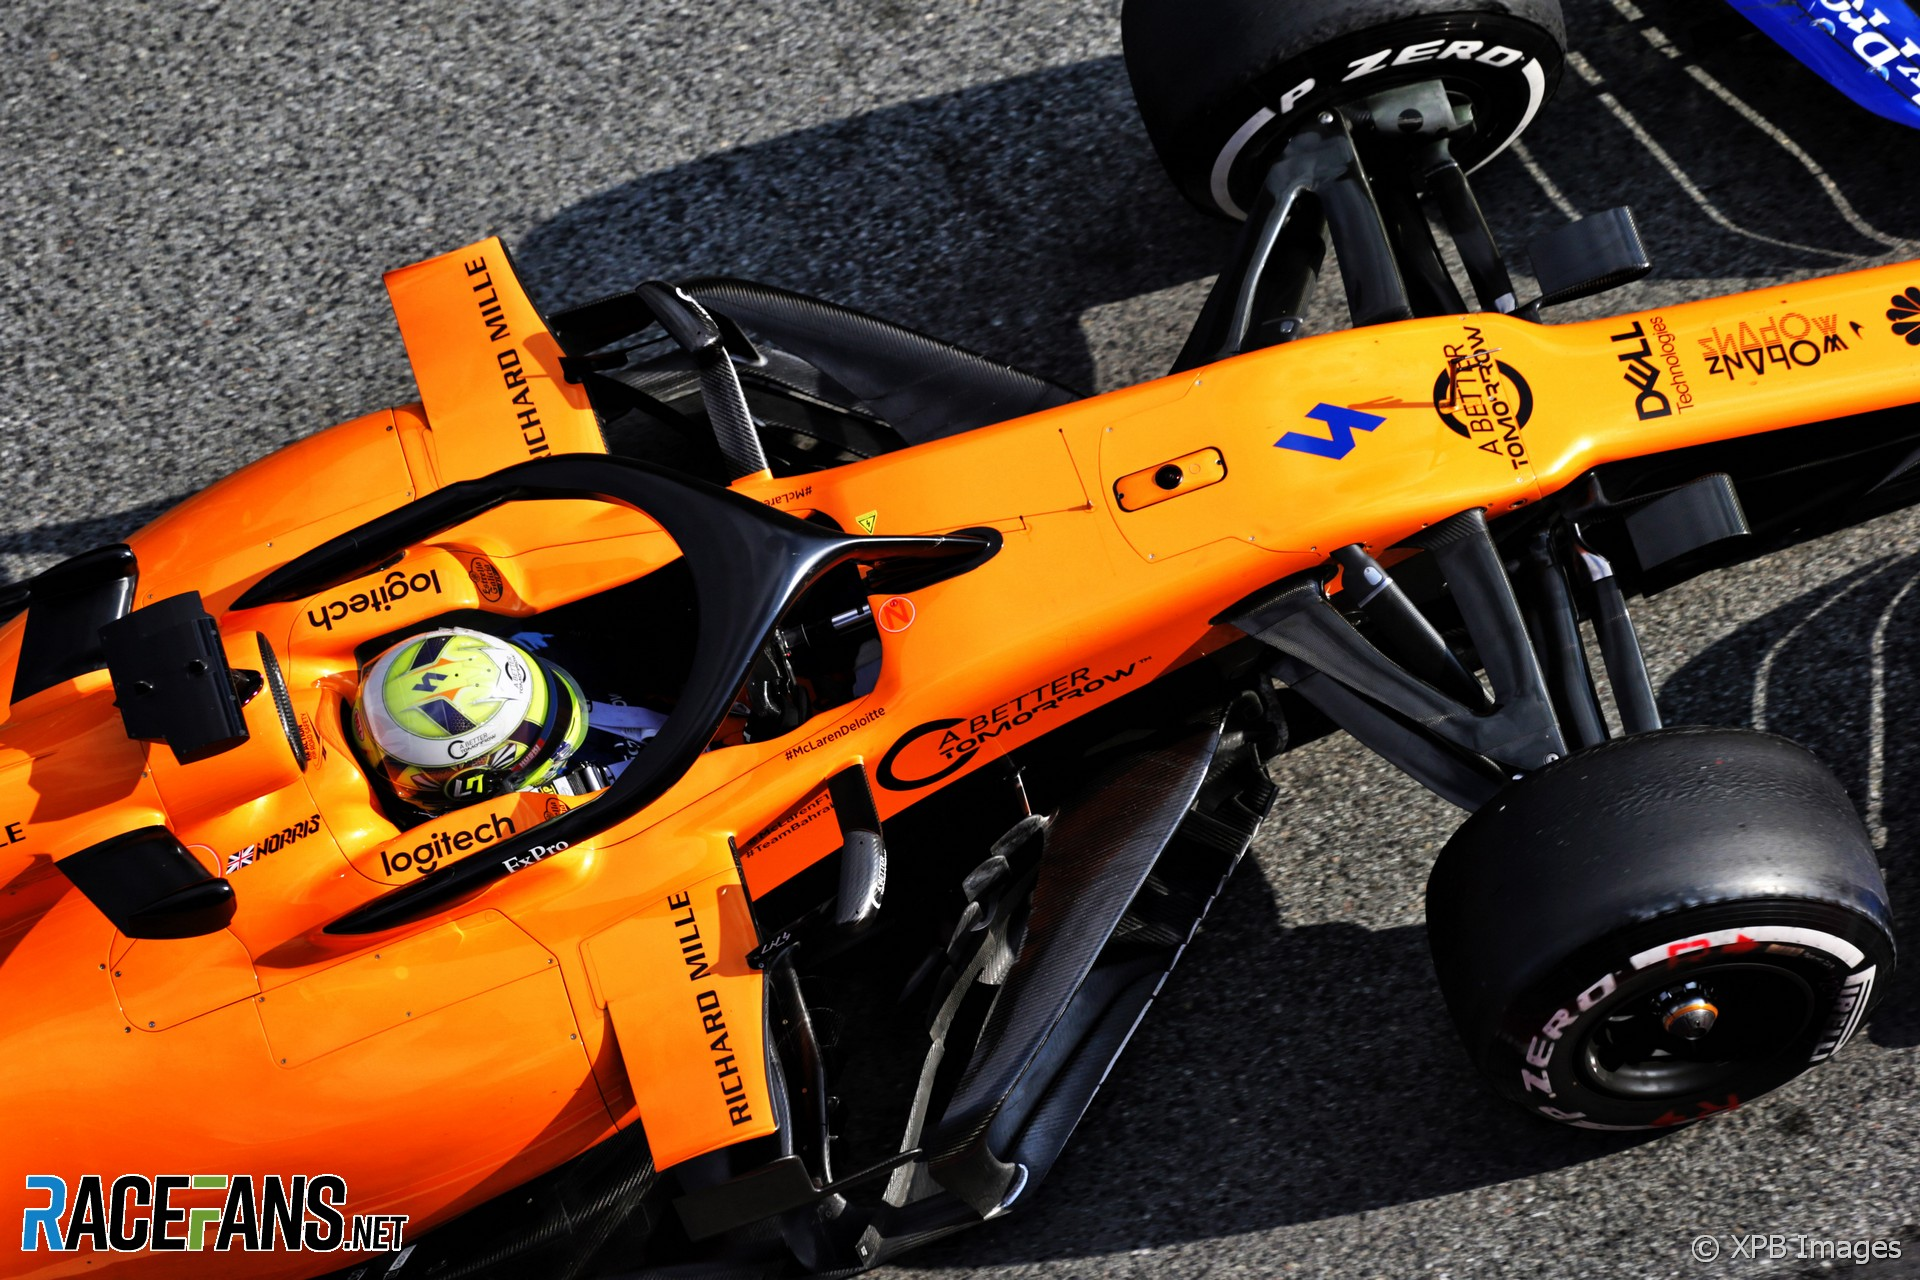 McLaren MCL34: 2019 F1 car technical analysis - RaceFans